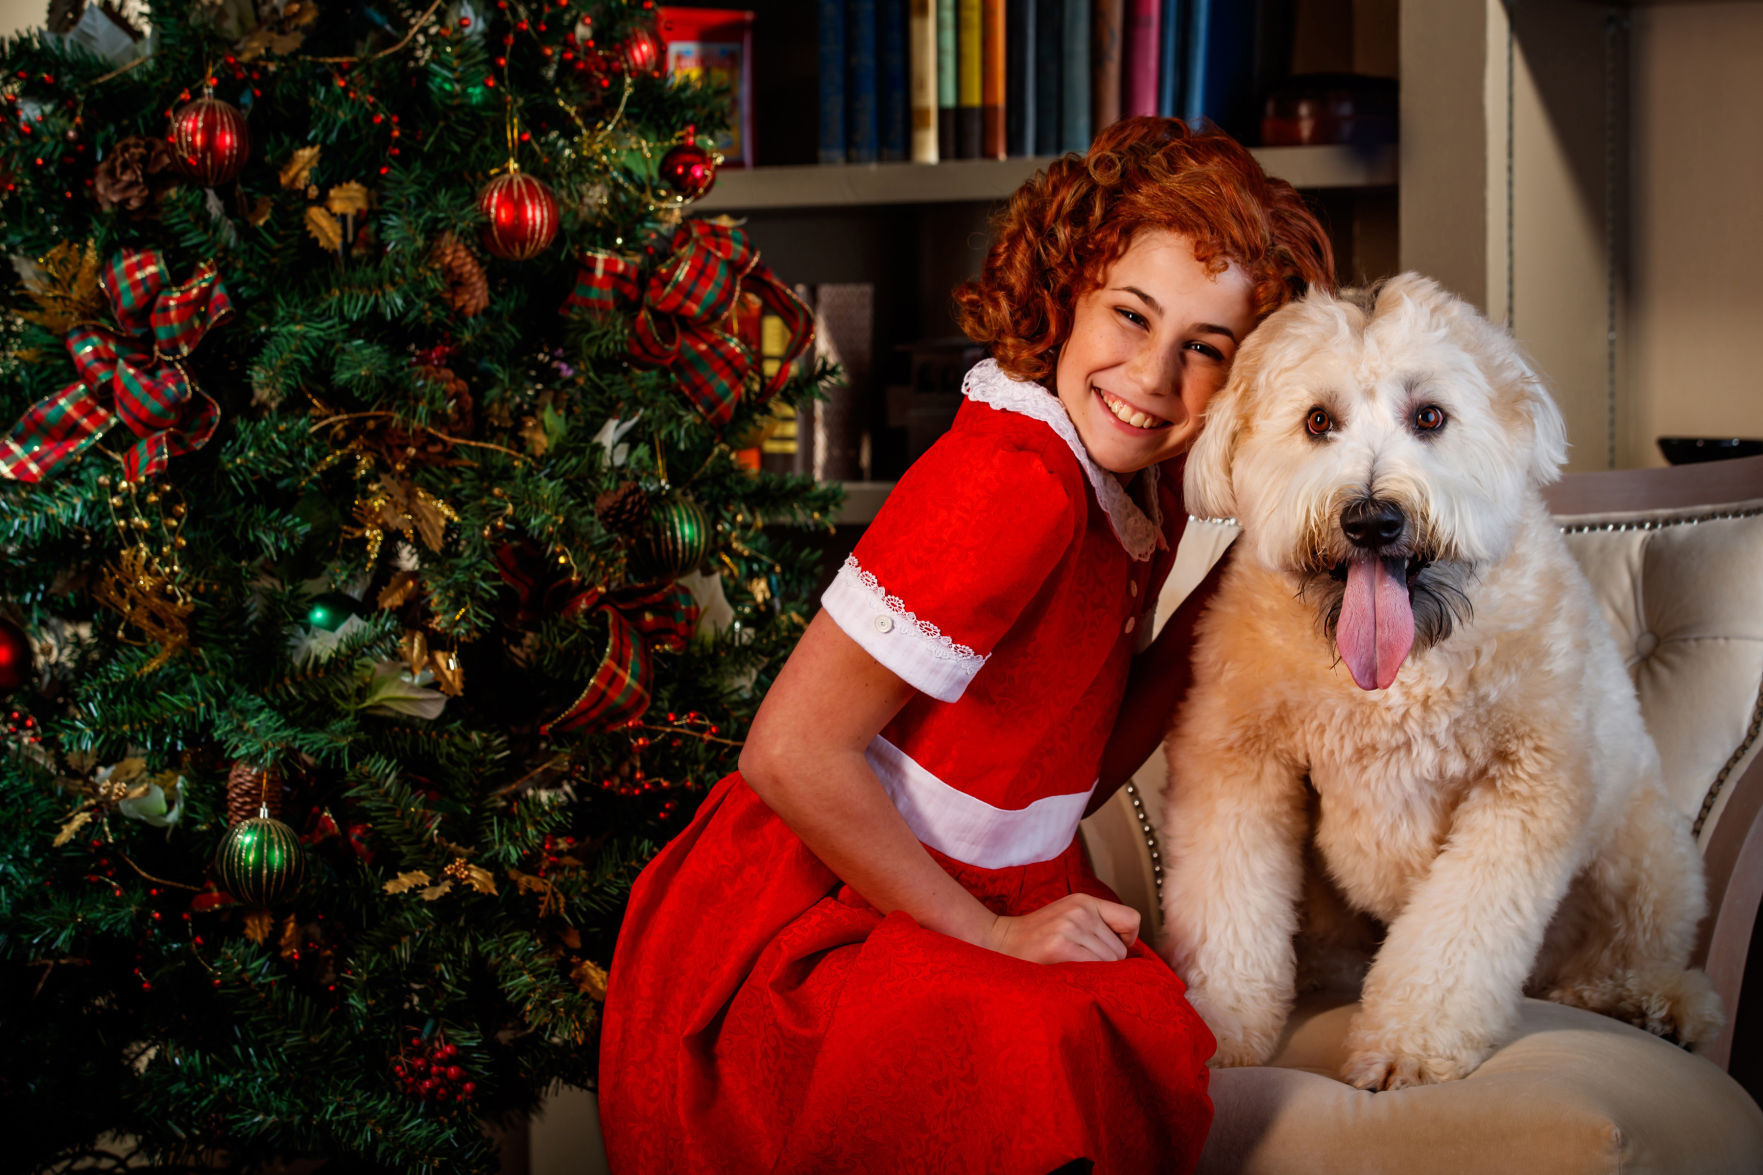 Annie Warbucks' adds to Christmas cheer | Theatre | nwitimes.com